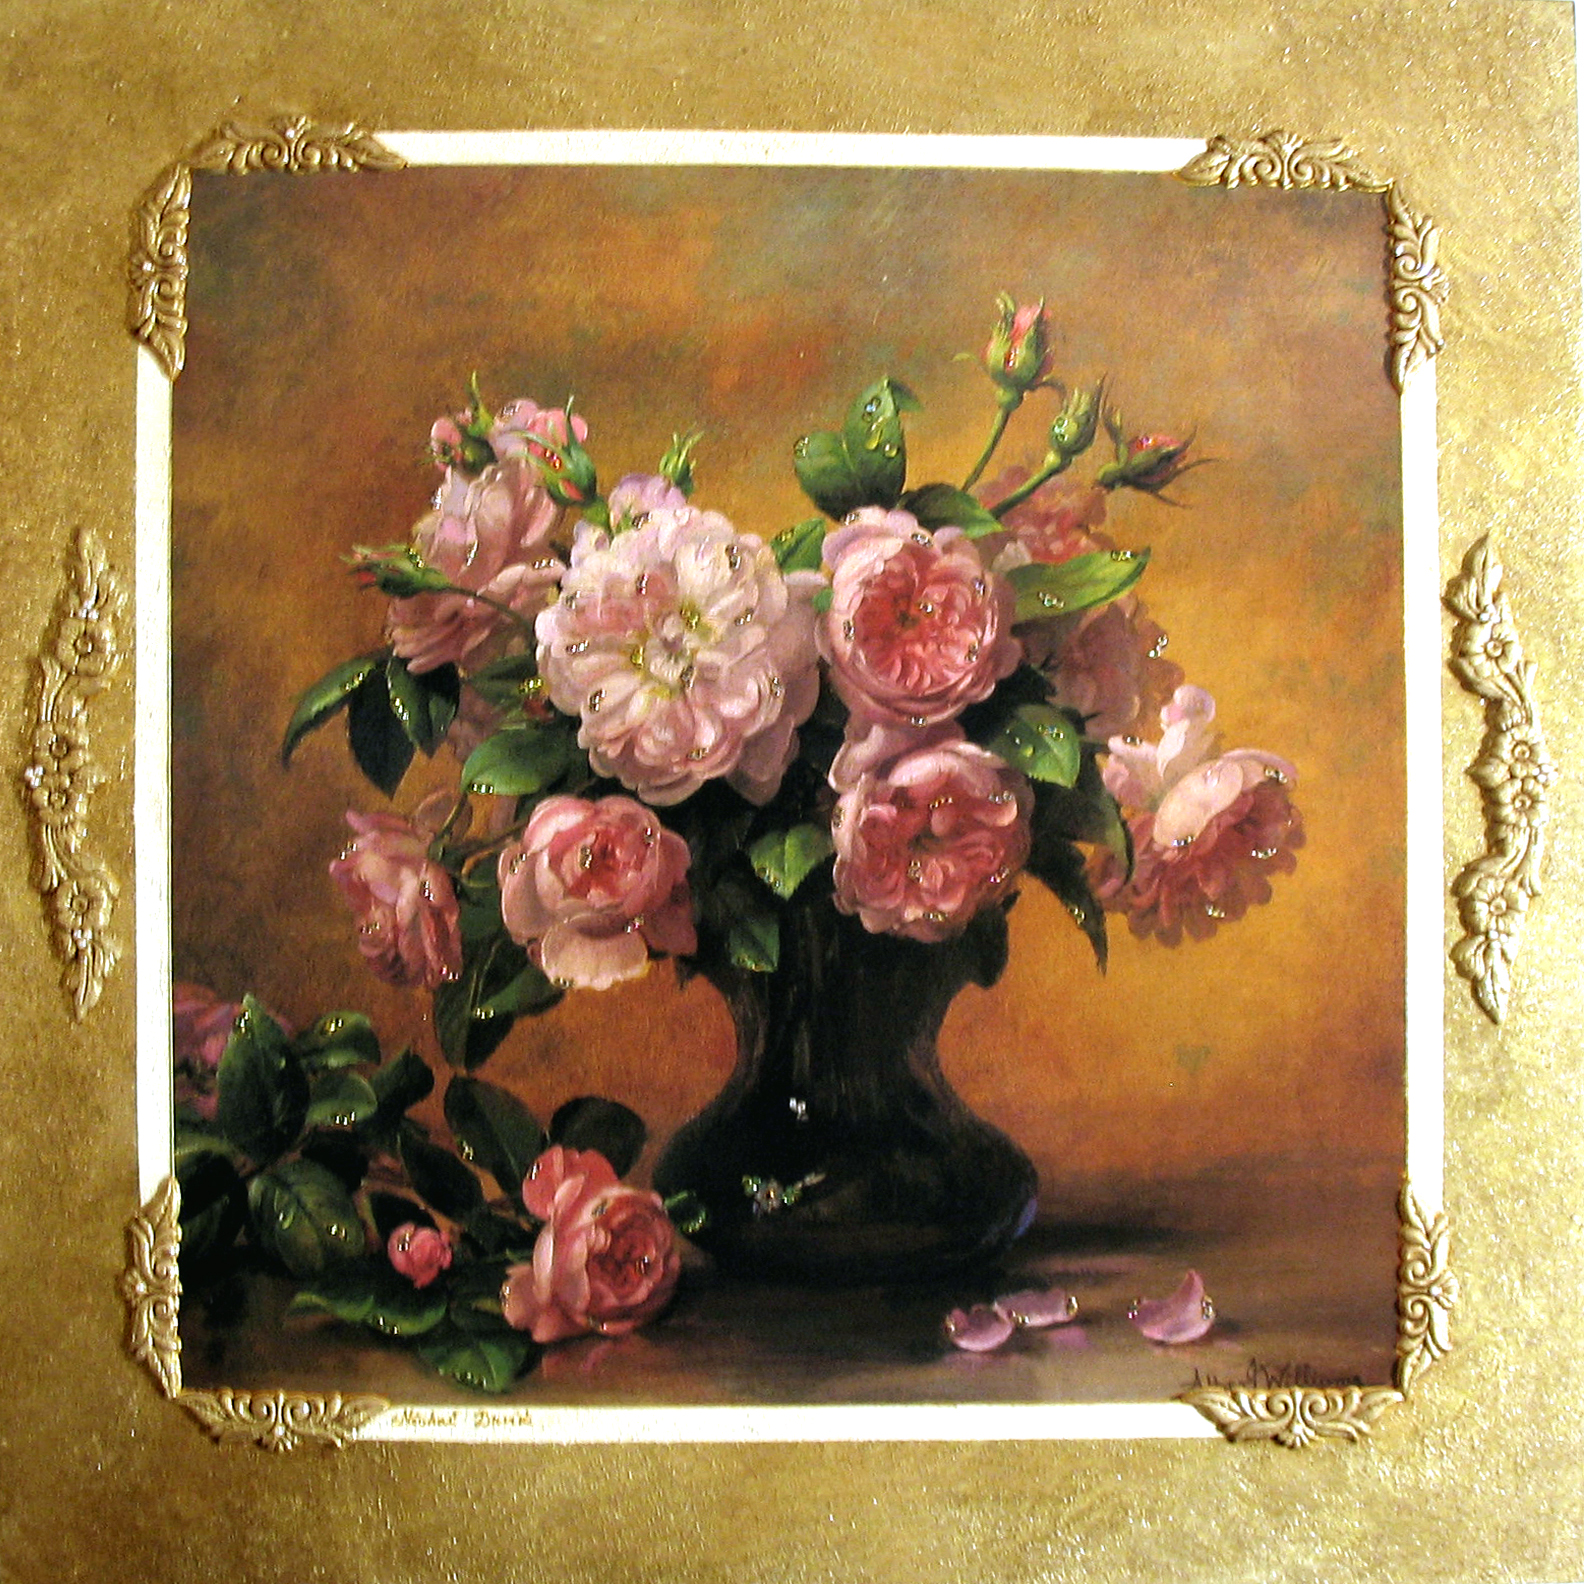 Roses Wall mounted picture M21